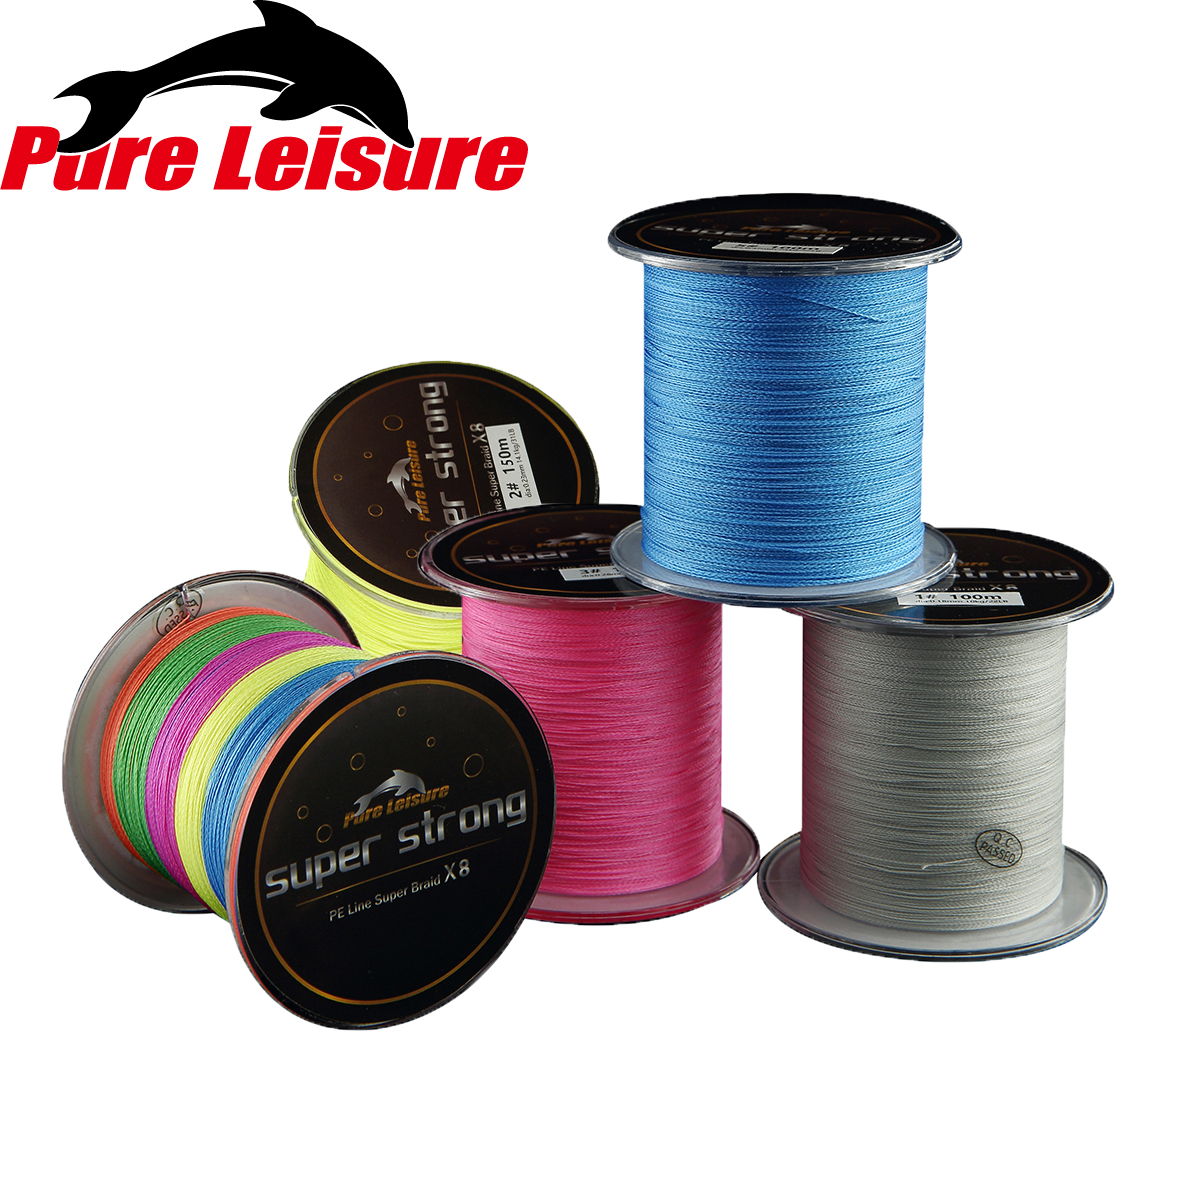 PureLeisure 150 m Braided Fishing Line Tresse De Peche 8 Brins 150 m Japan Material Linha Fishing Carp 150m for Sea Fishing